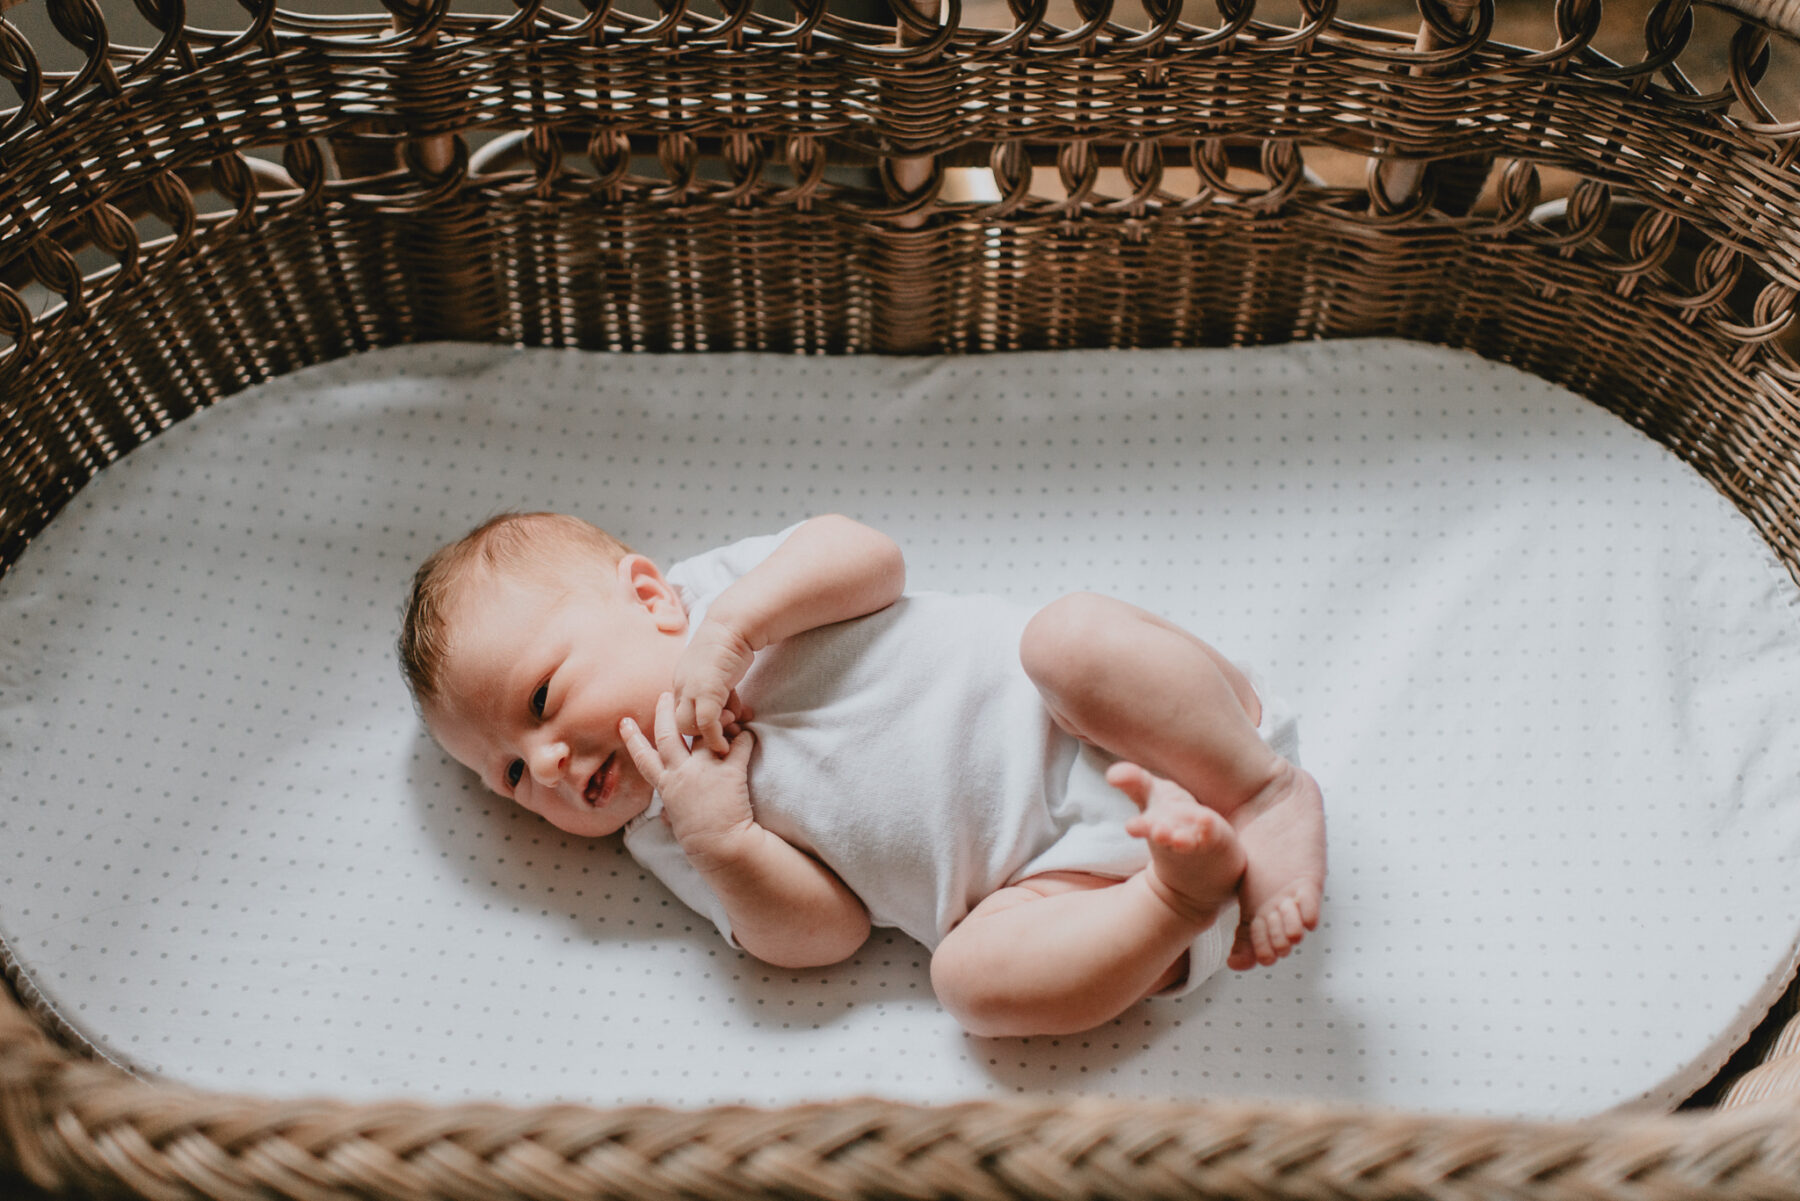 In-Home Lifestyle Newborn Session from Five Pence Photography featured on Nashville Baby Guide